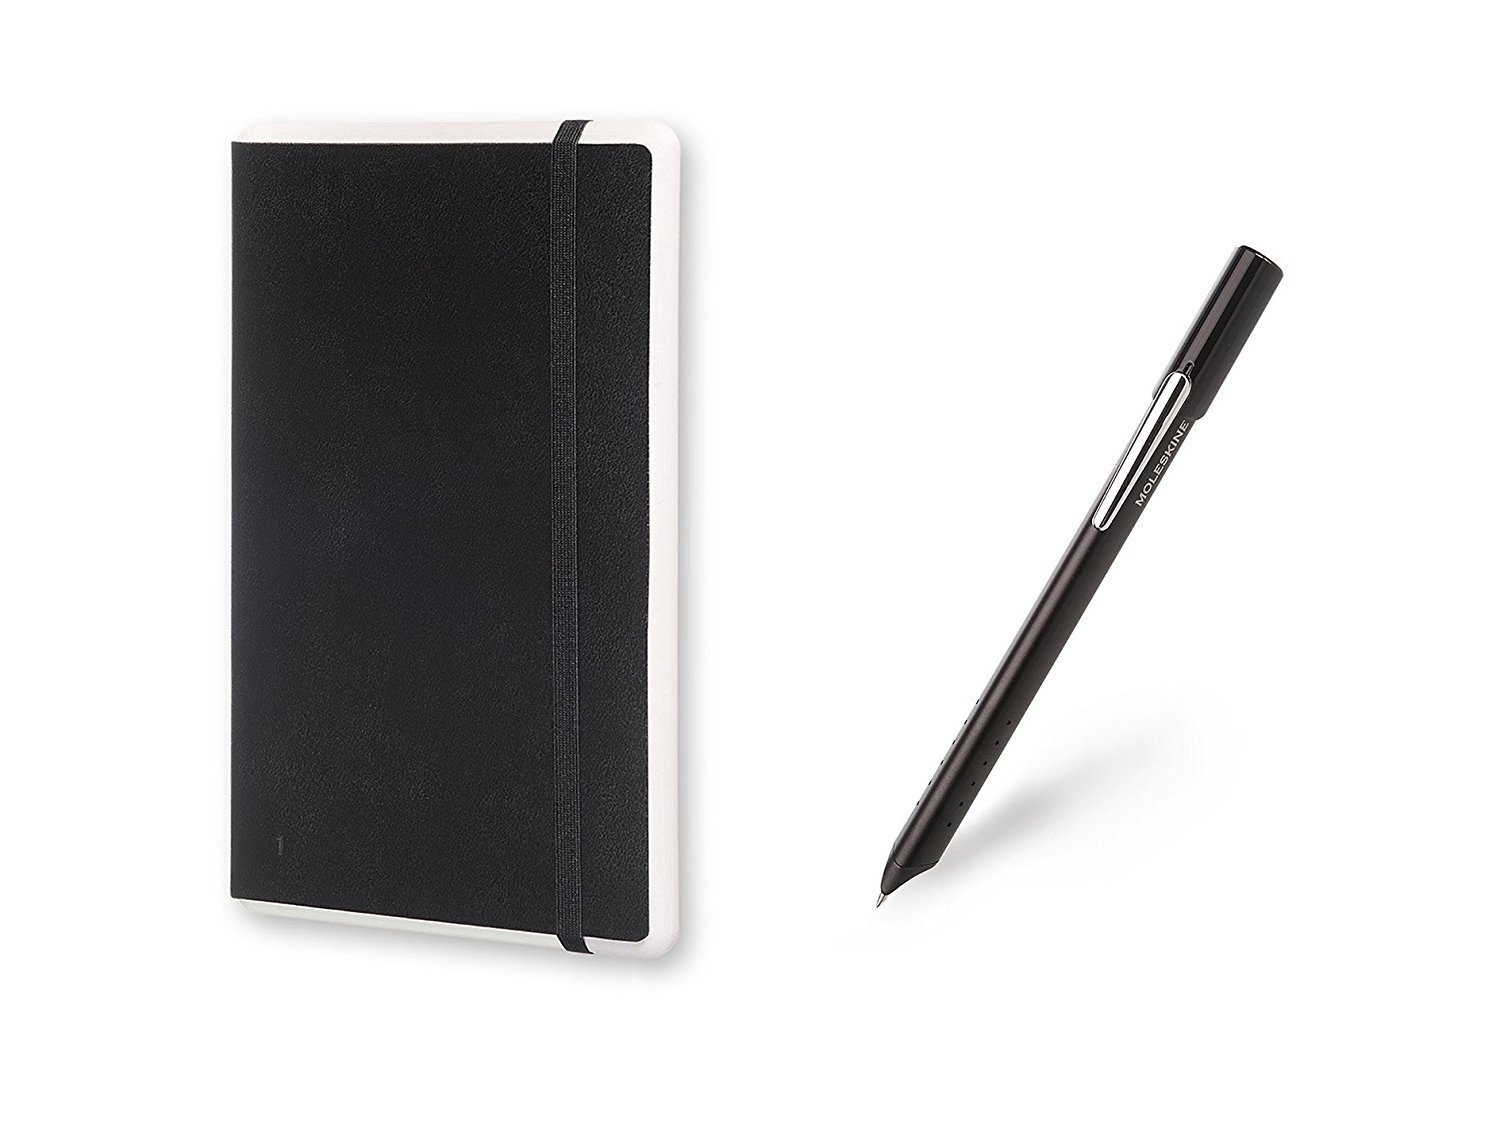 Smart Writing Set Paper Tablet and Pen by Unknown, ISBN: 8055002851152